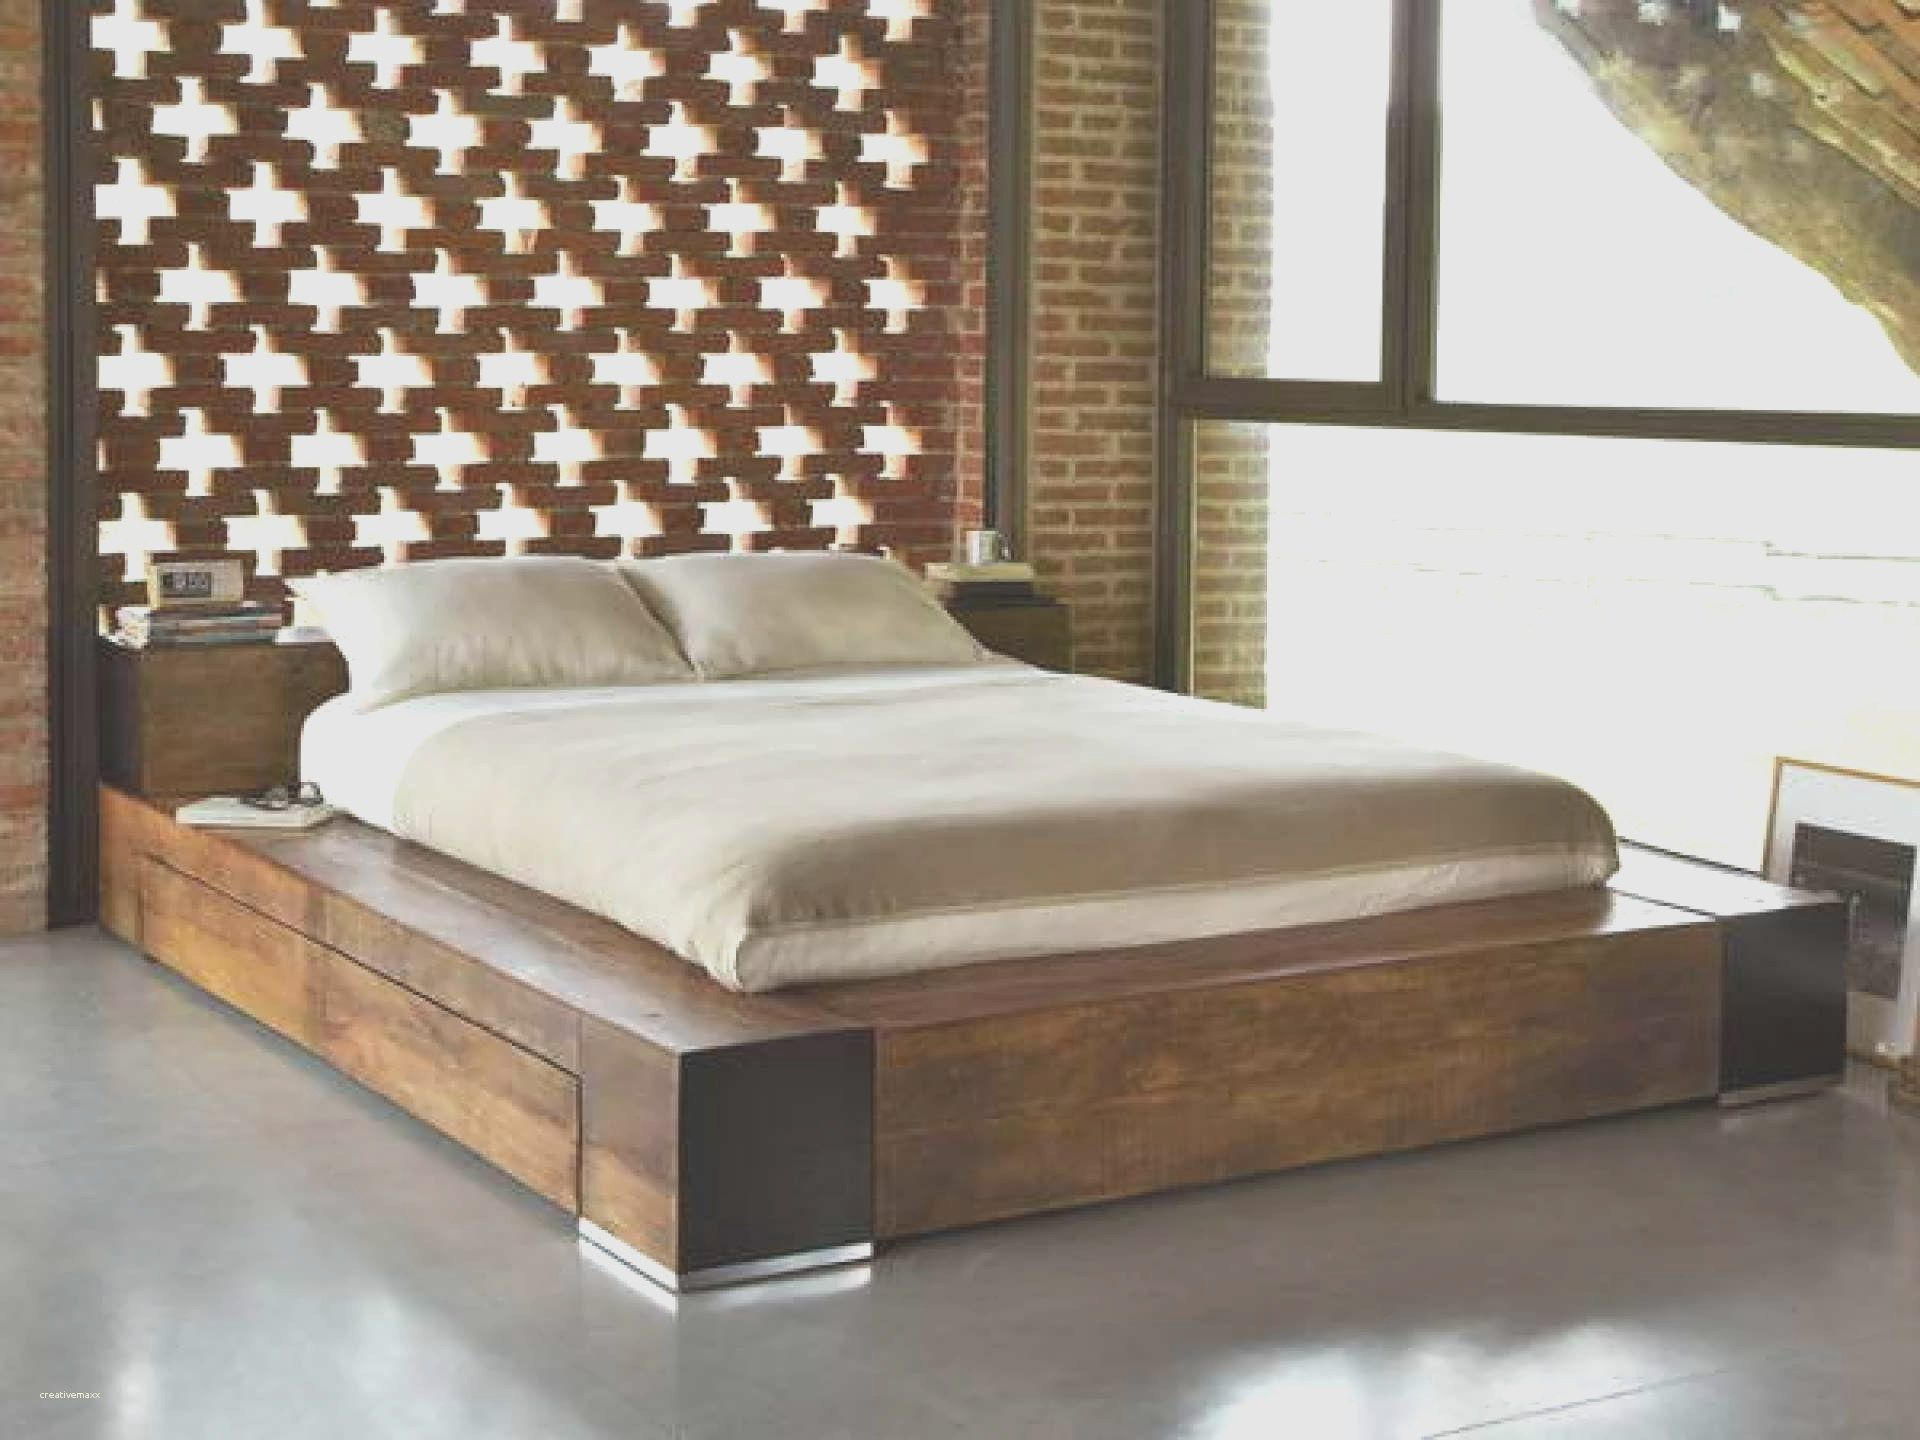 10 Best King Size Bed Design Ideas Which You Can Choose To Bedroom Deco Chambre A Coucher Cadre De Lit En Bois Et Modele De Lit